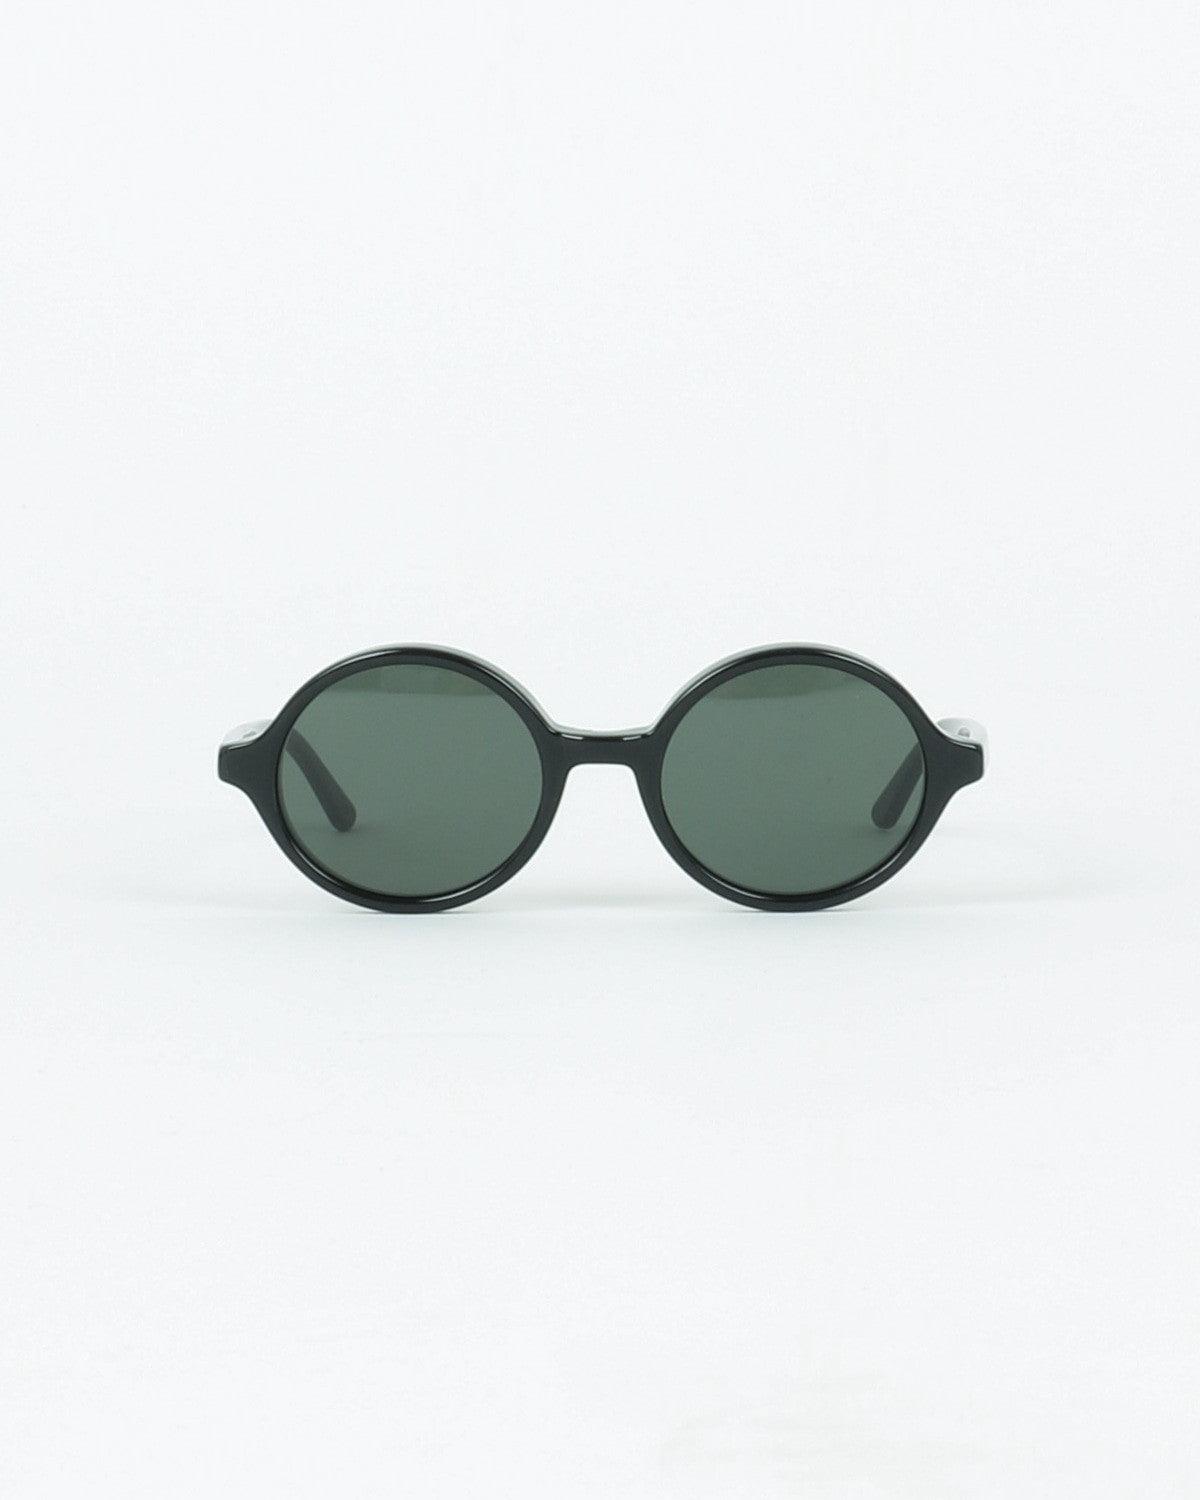 han kjobenhavn_doc_sunglasses_black_view_3_4